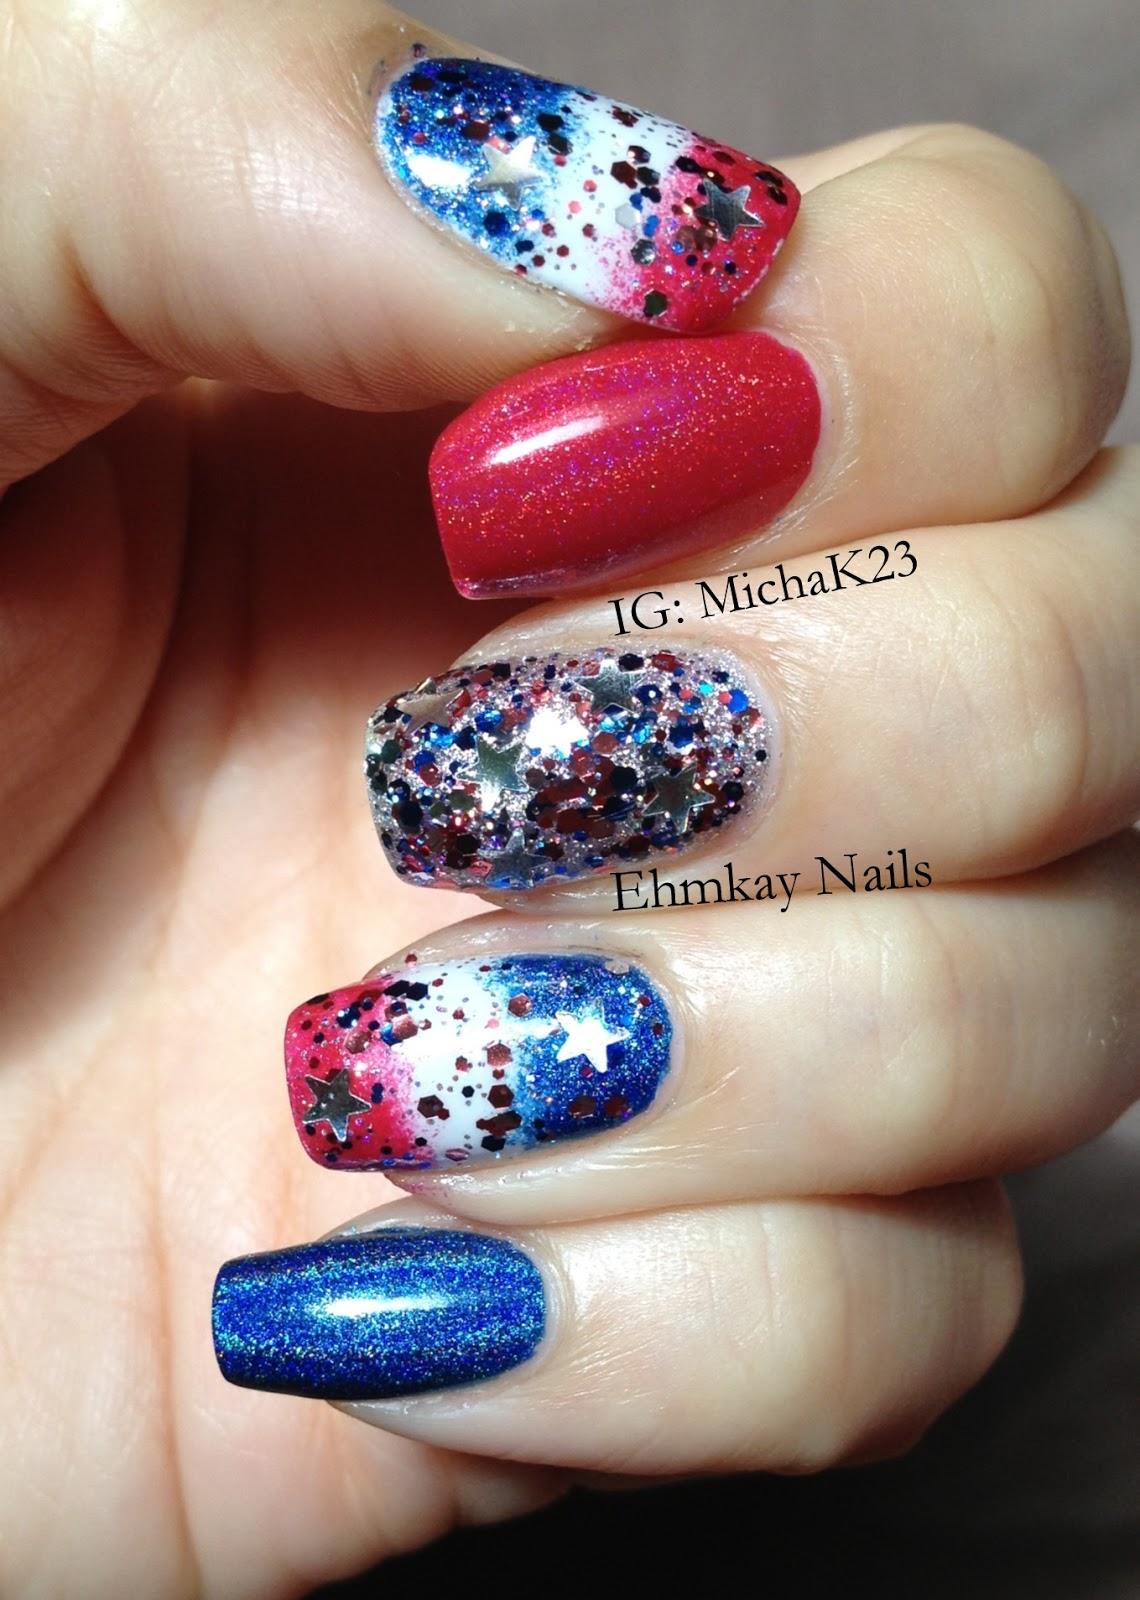 Ehmkay nails happy fourth of july quick patriotic nail art patriotic fourth of july nail art prinsesfo Image collections